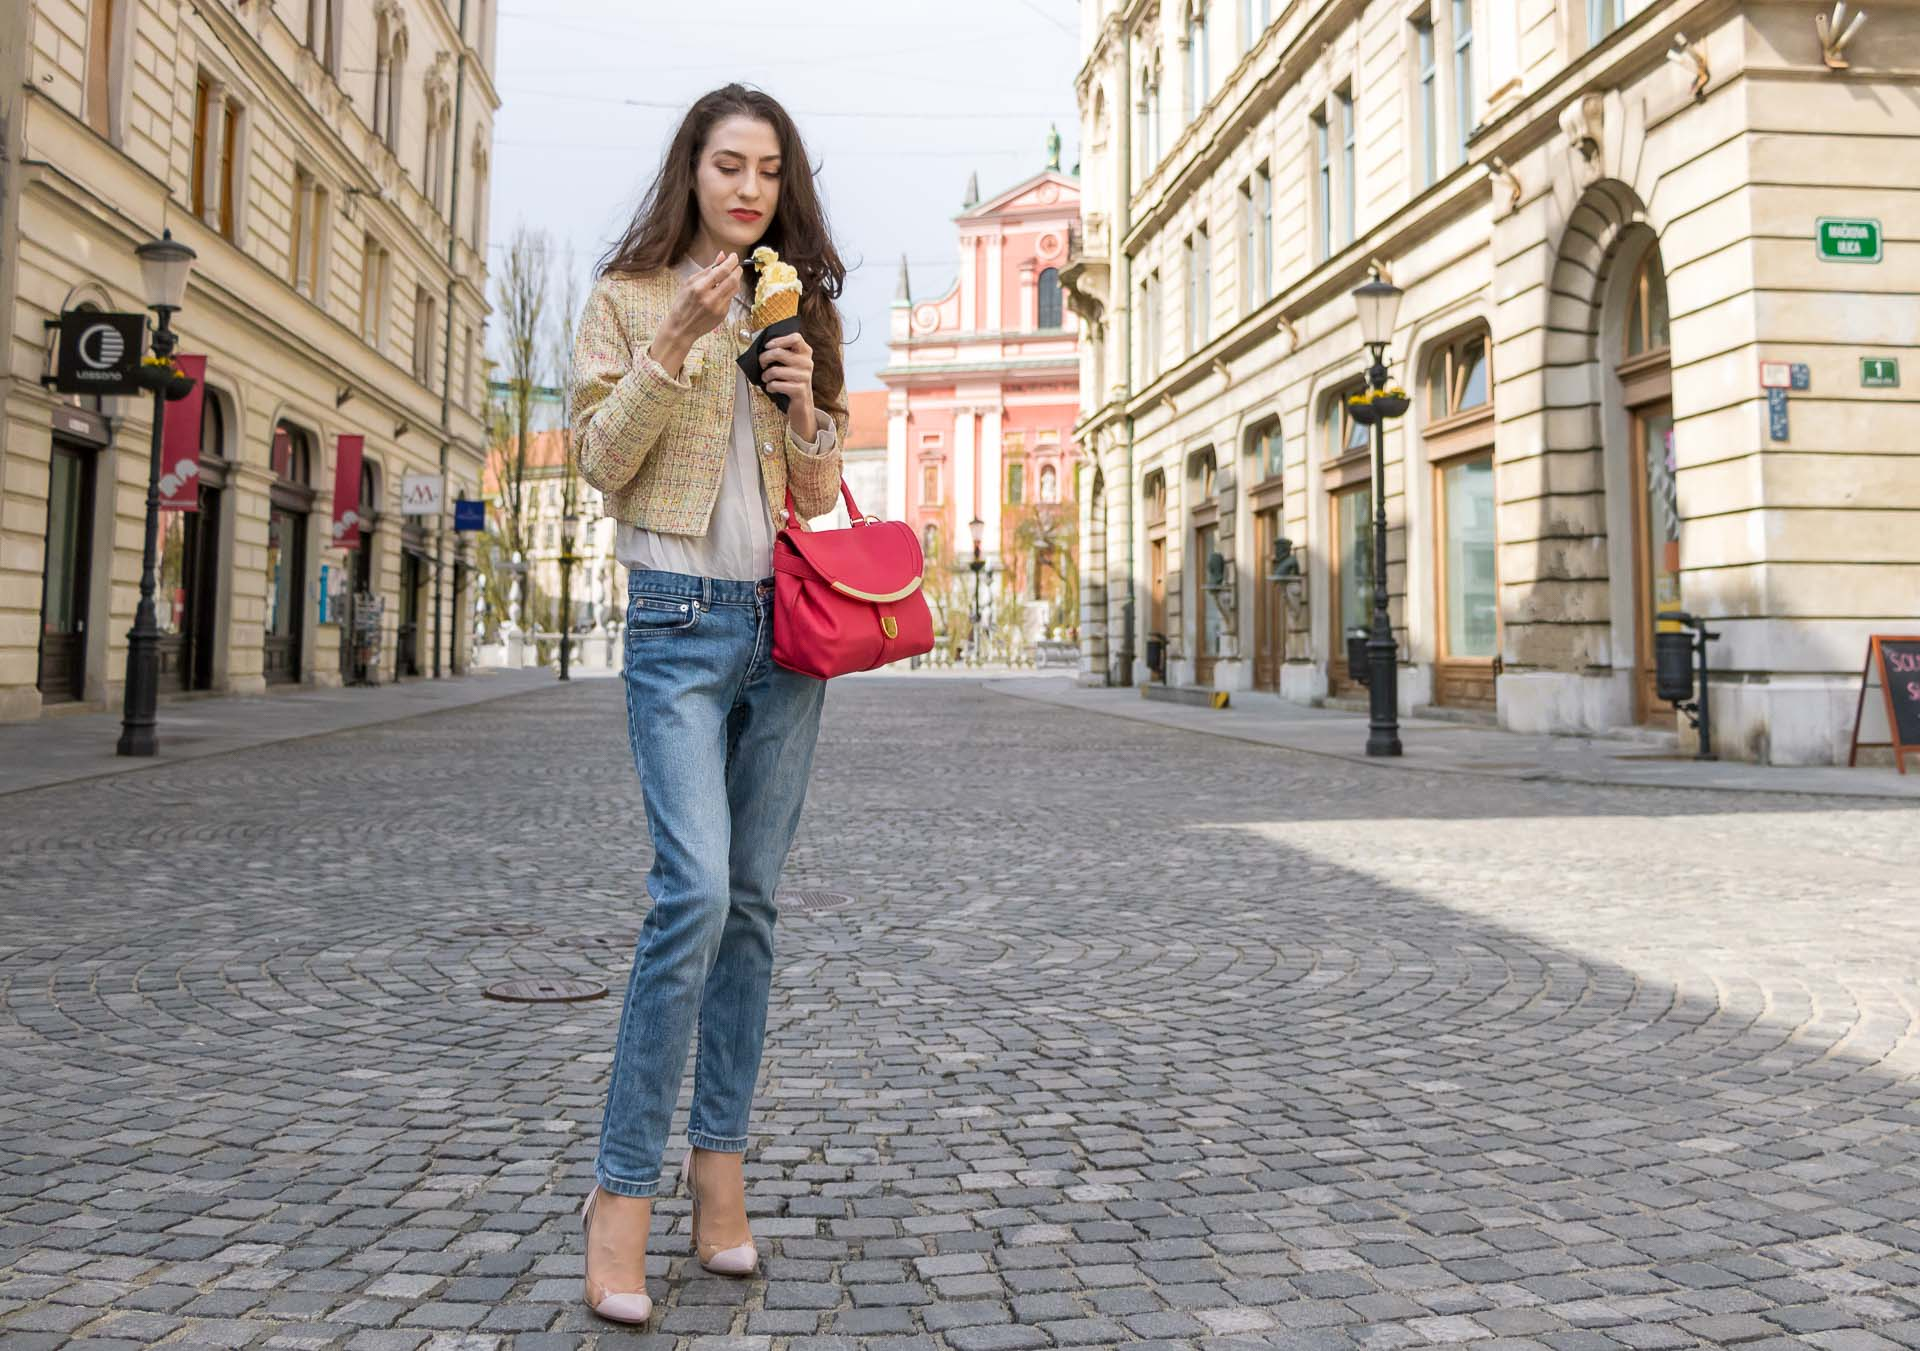 Veronika Lipar Fashion Blogger of Brunette from Wall Street wearing chic casual everyday spring outfit, the yellow tweed jacket from Storets, blue jeans from A.P.C., pink top handle bag and organza white shirt eating ice cream on the street